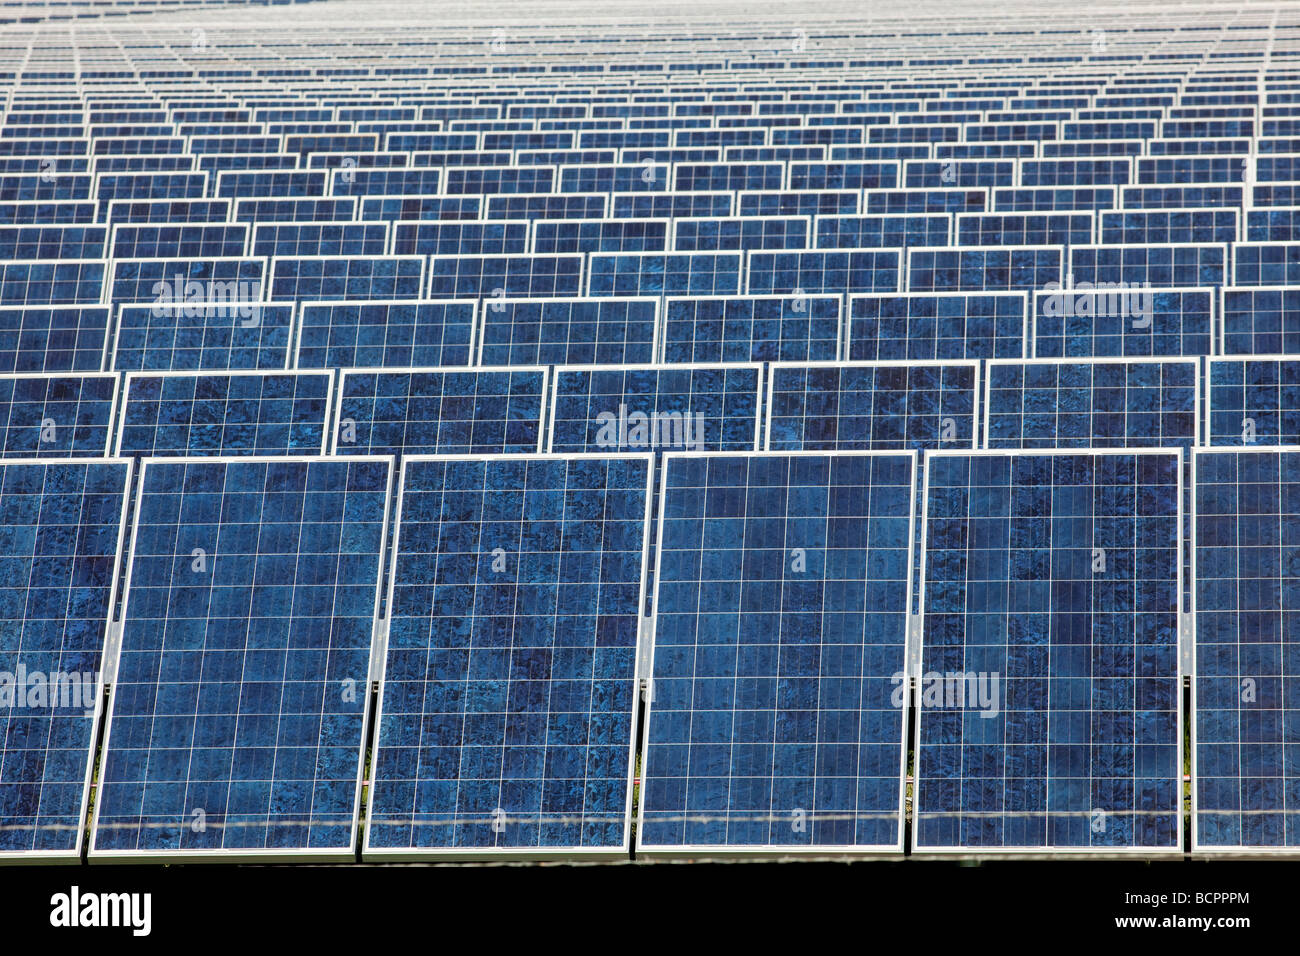 Photovoltaic solar collectors at the largest photovoltaic power plant in the United States - Stock Image